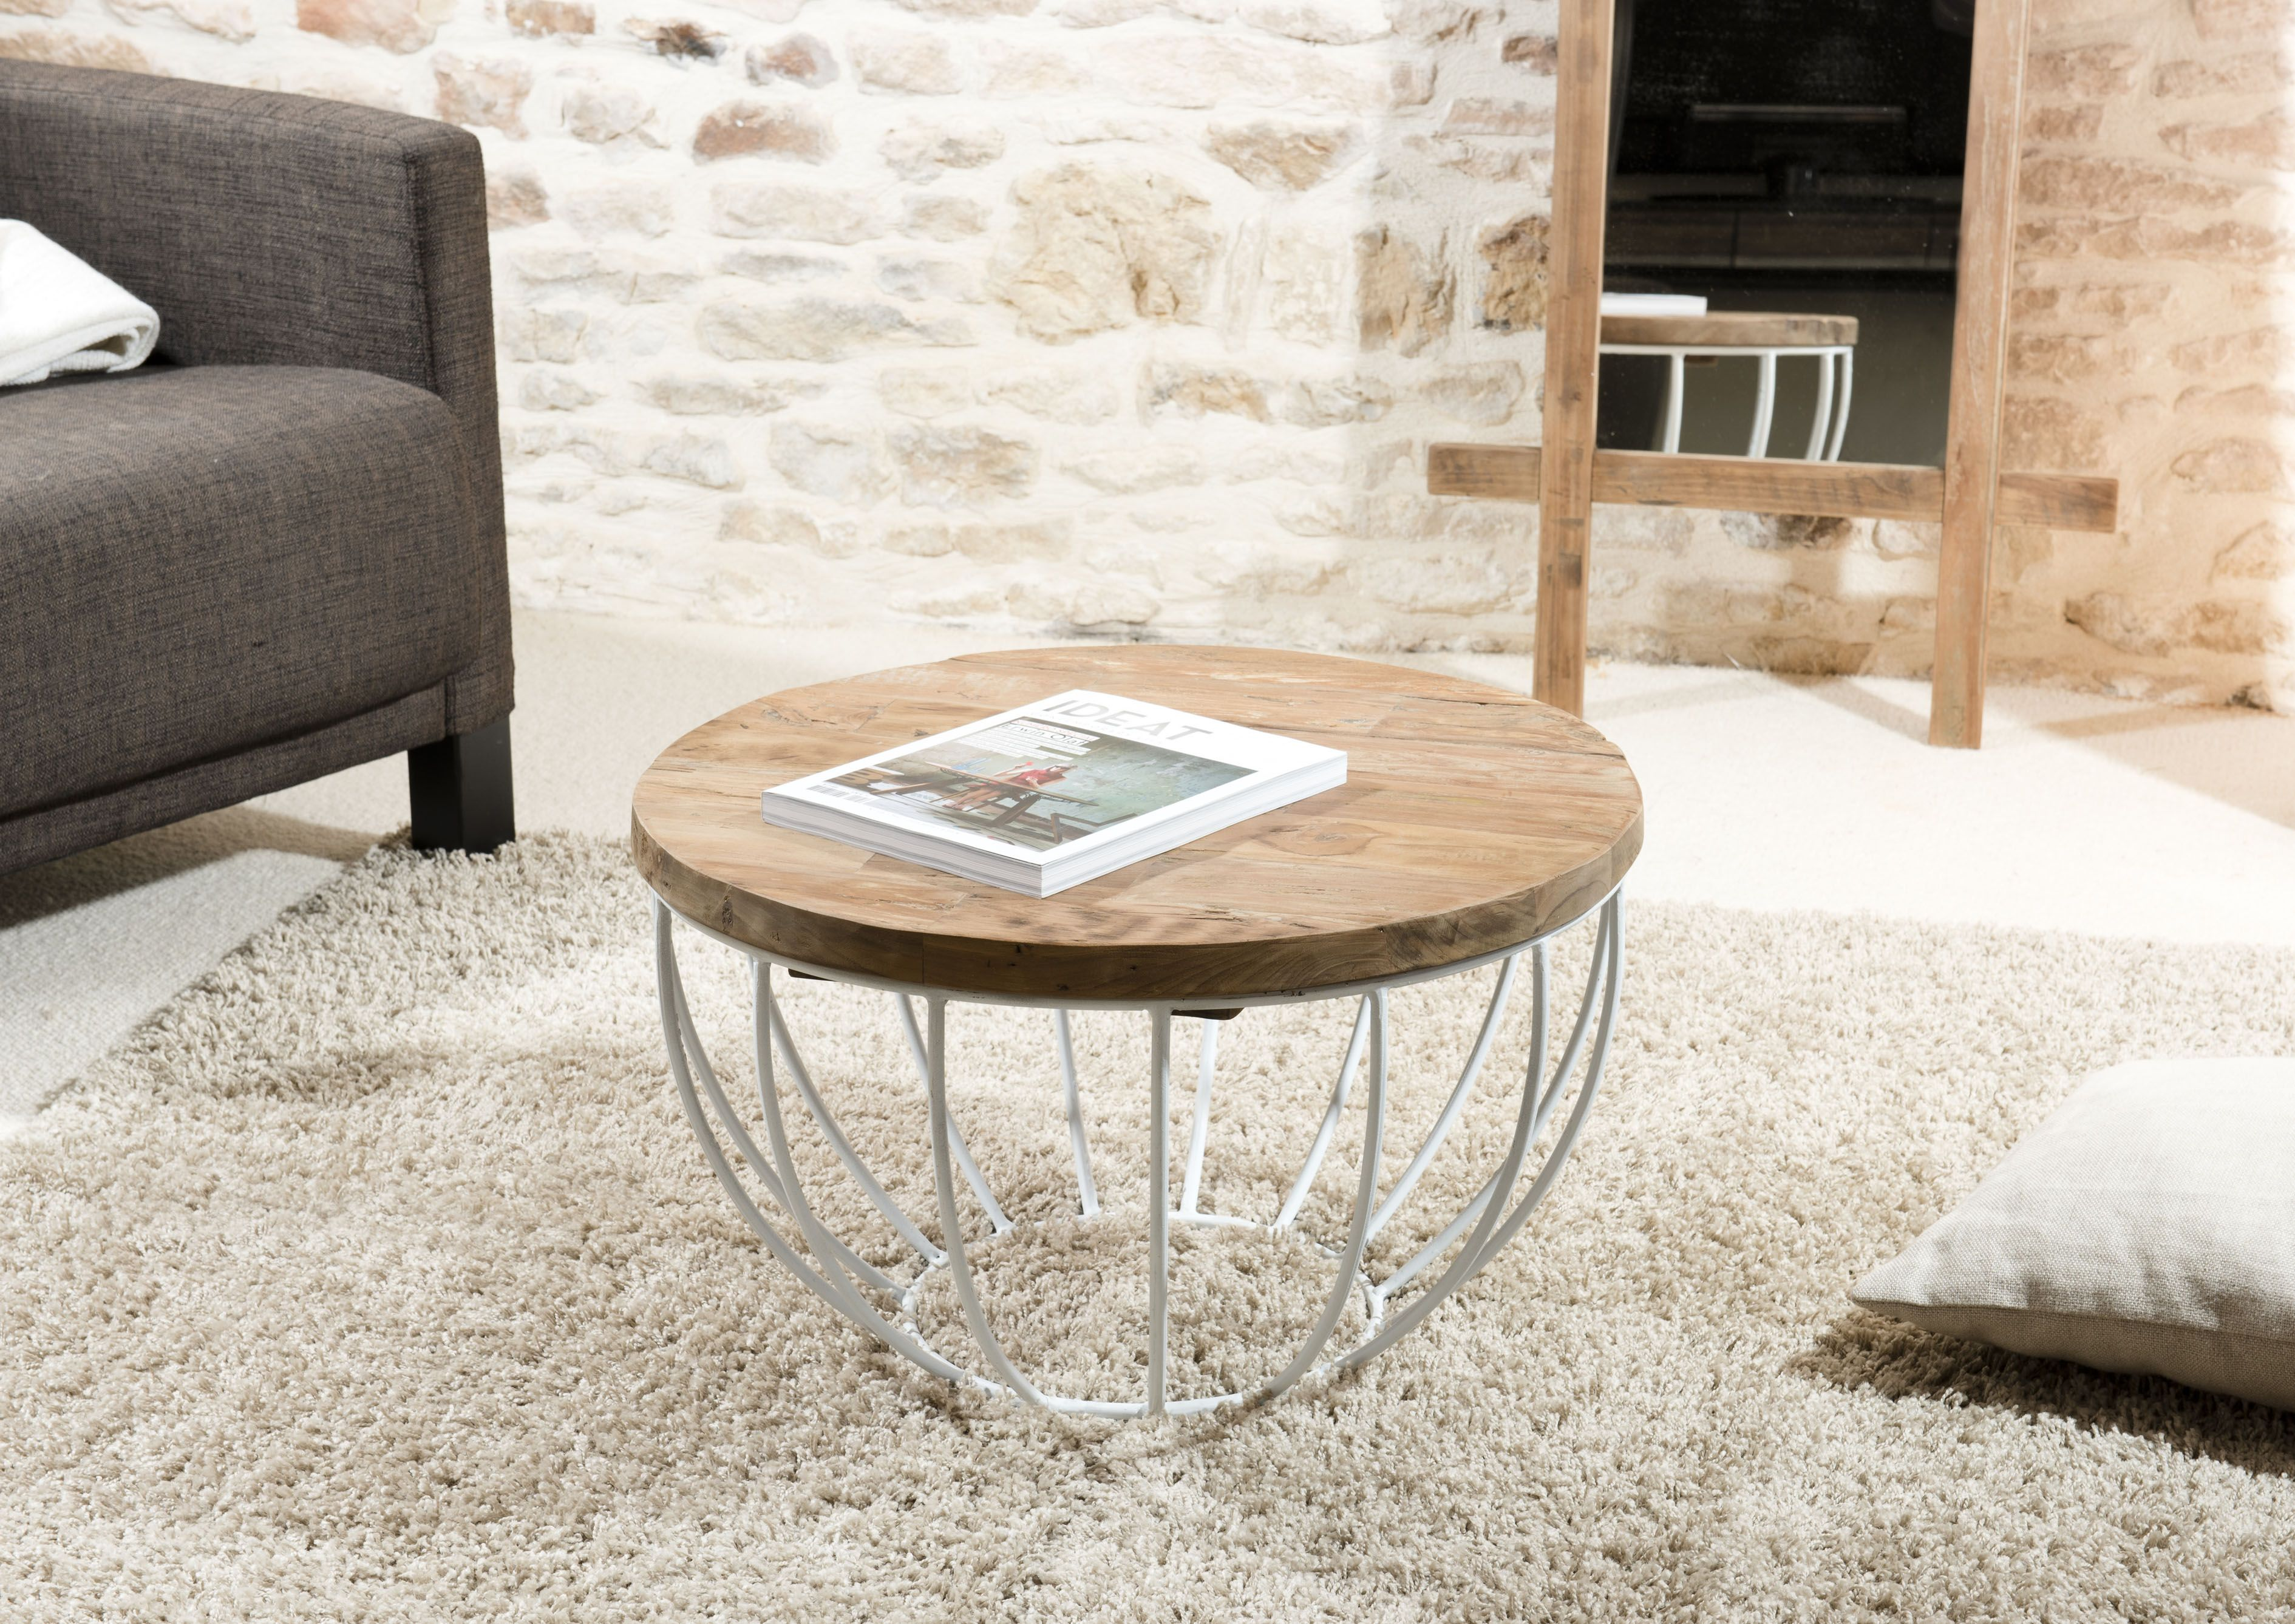 petite table basse ronde teck recycle